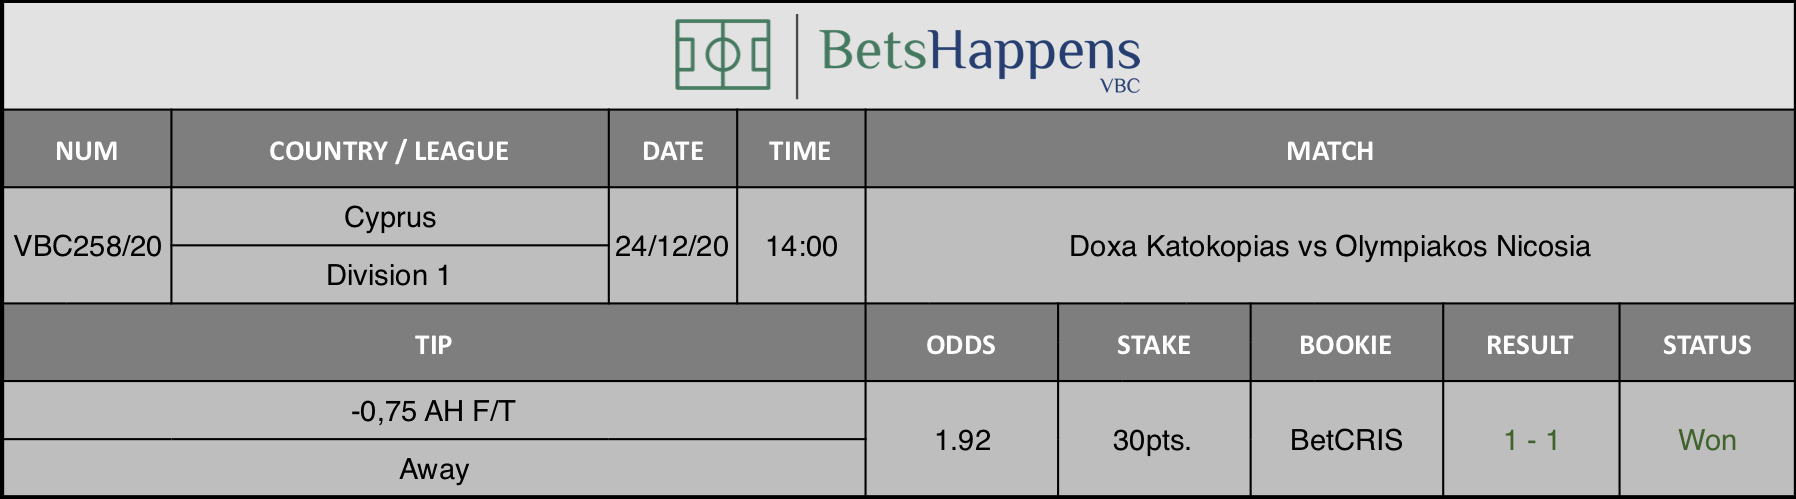 Results of our tip for the Doxa Katokopias vs Olympiakos Nicosia match where -0,75 AH F/T Away is recommended.